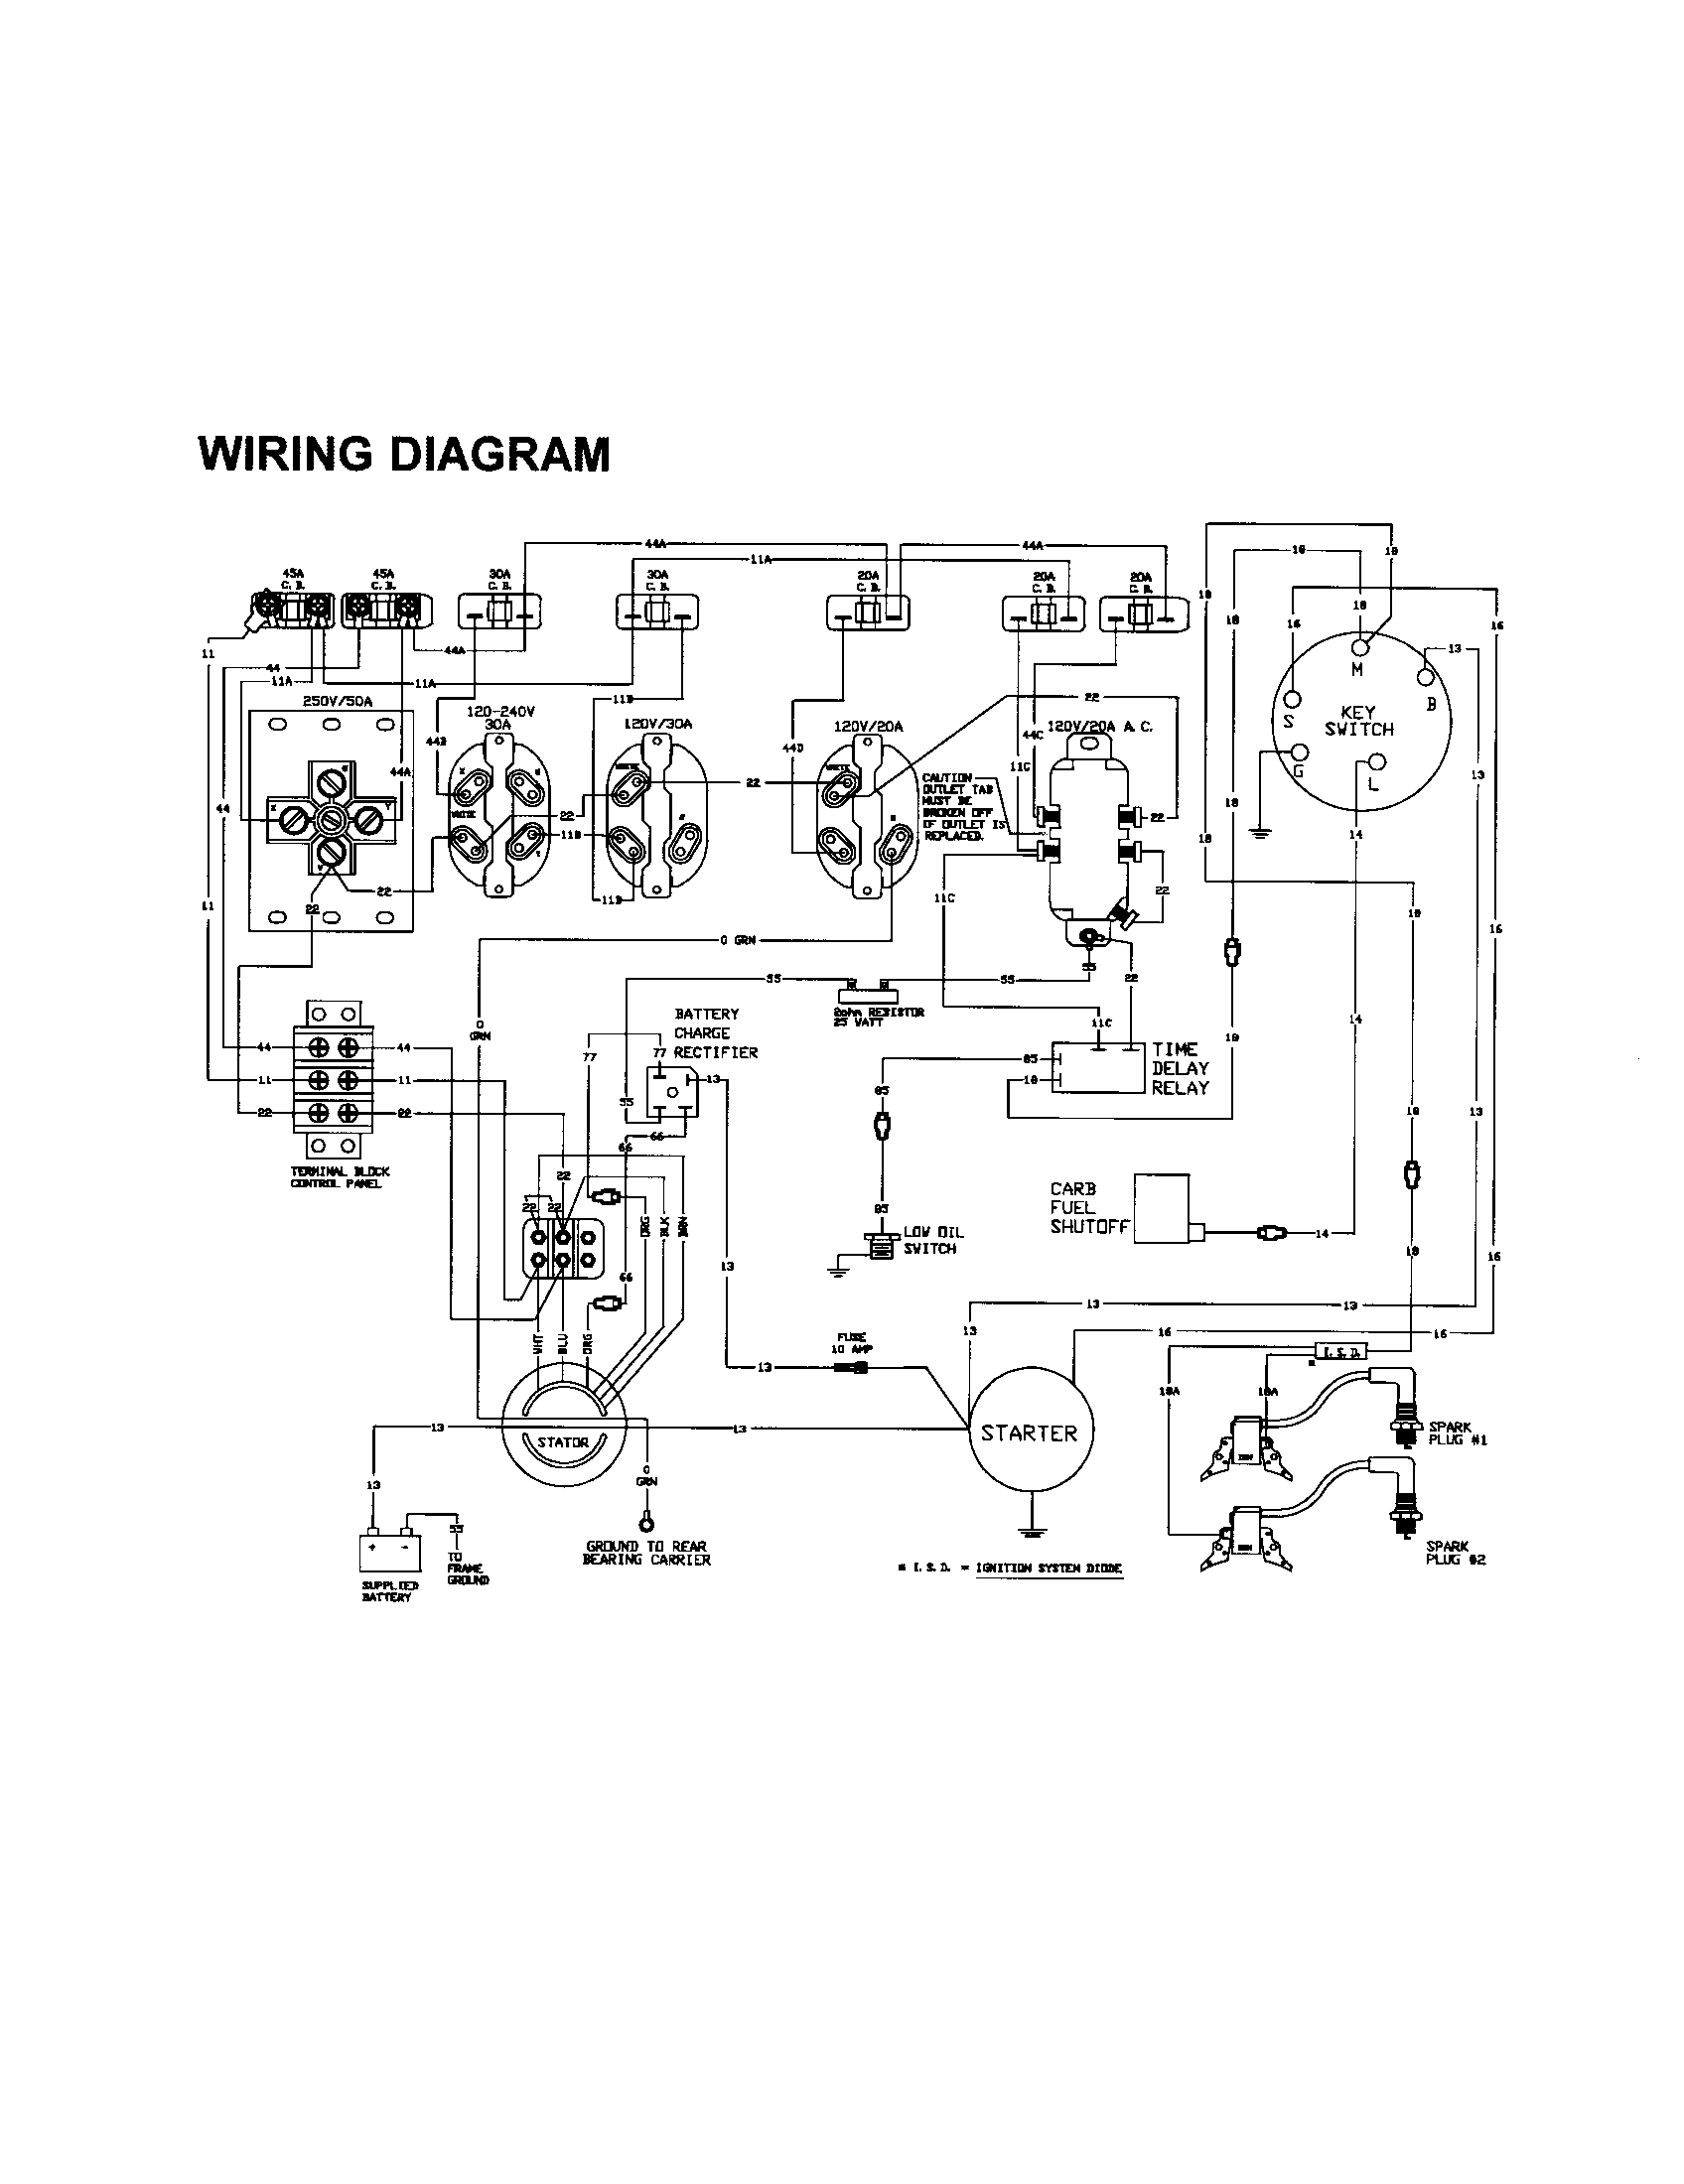 generac generator wiring diagram parts model 13131